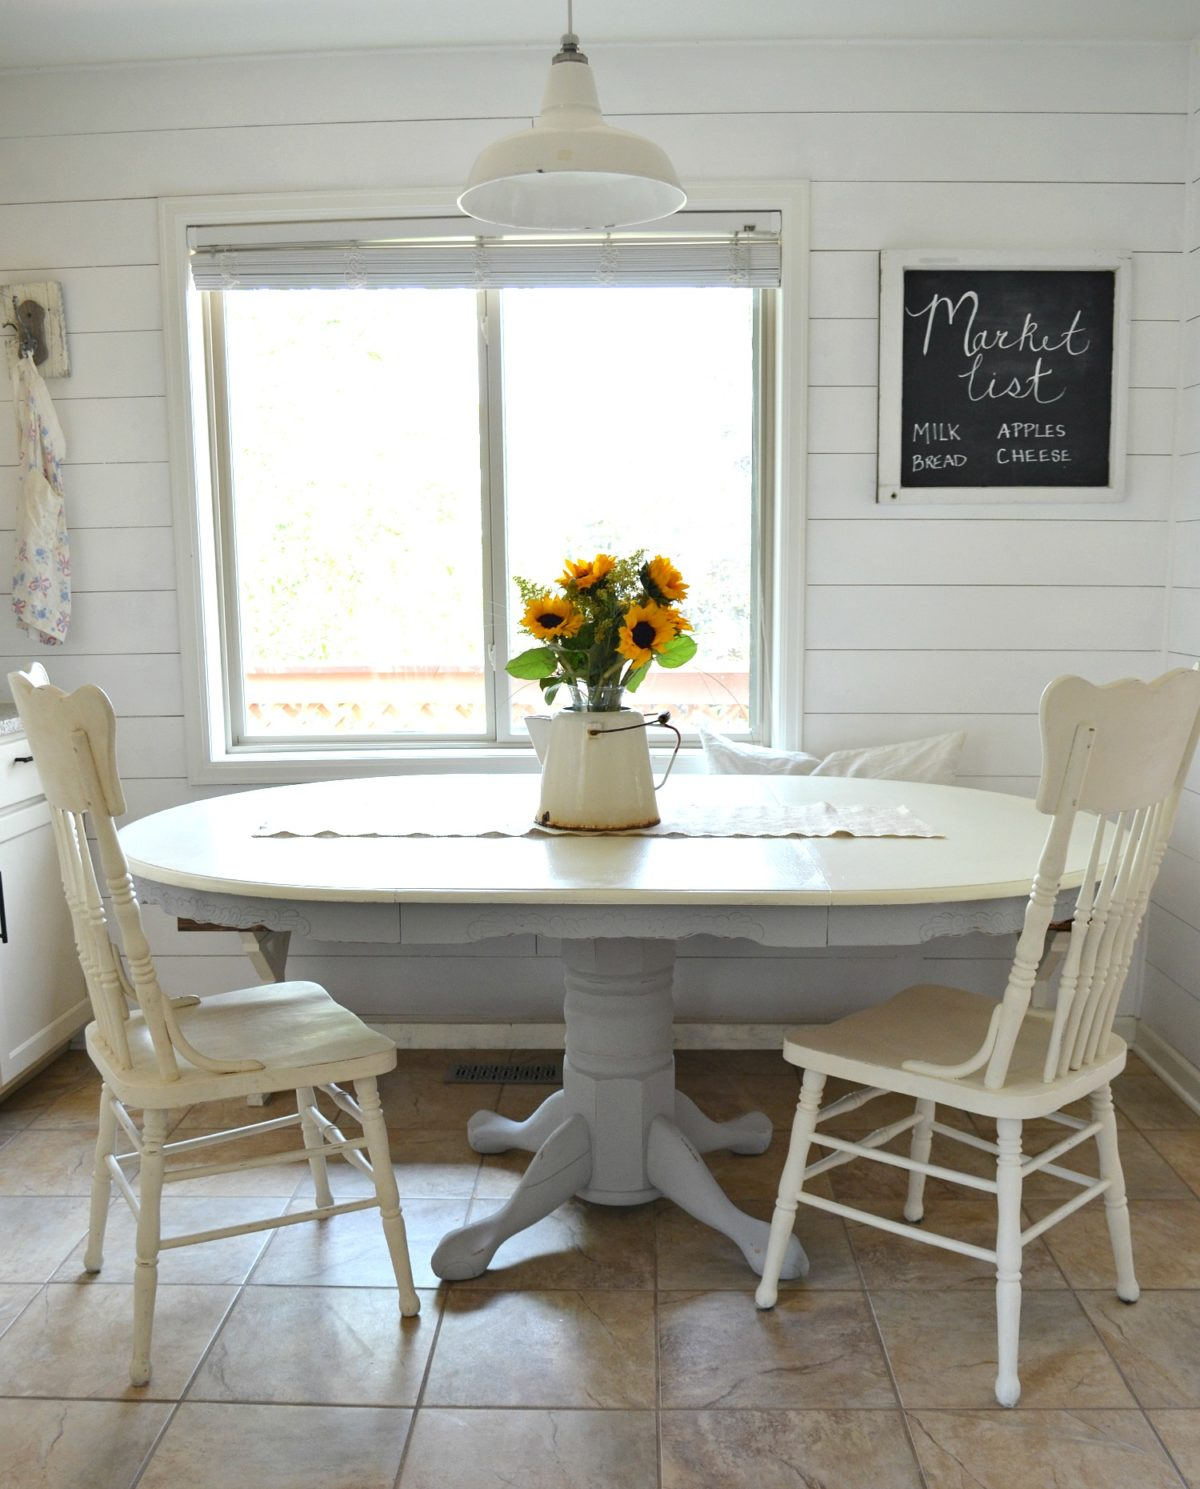 Painted Family Kitchen With Dining Nook: DIY Dining Table Makeover Breakfast Nook